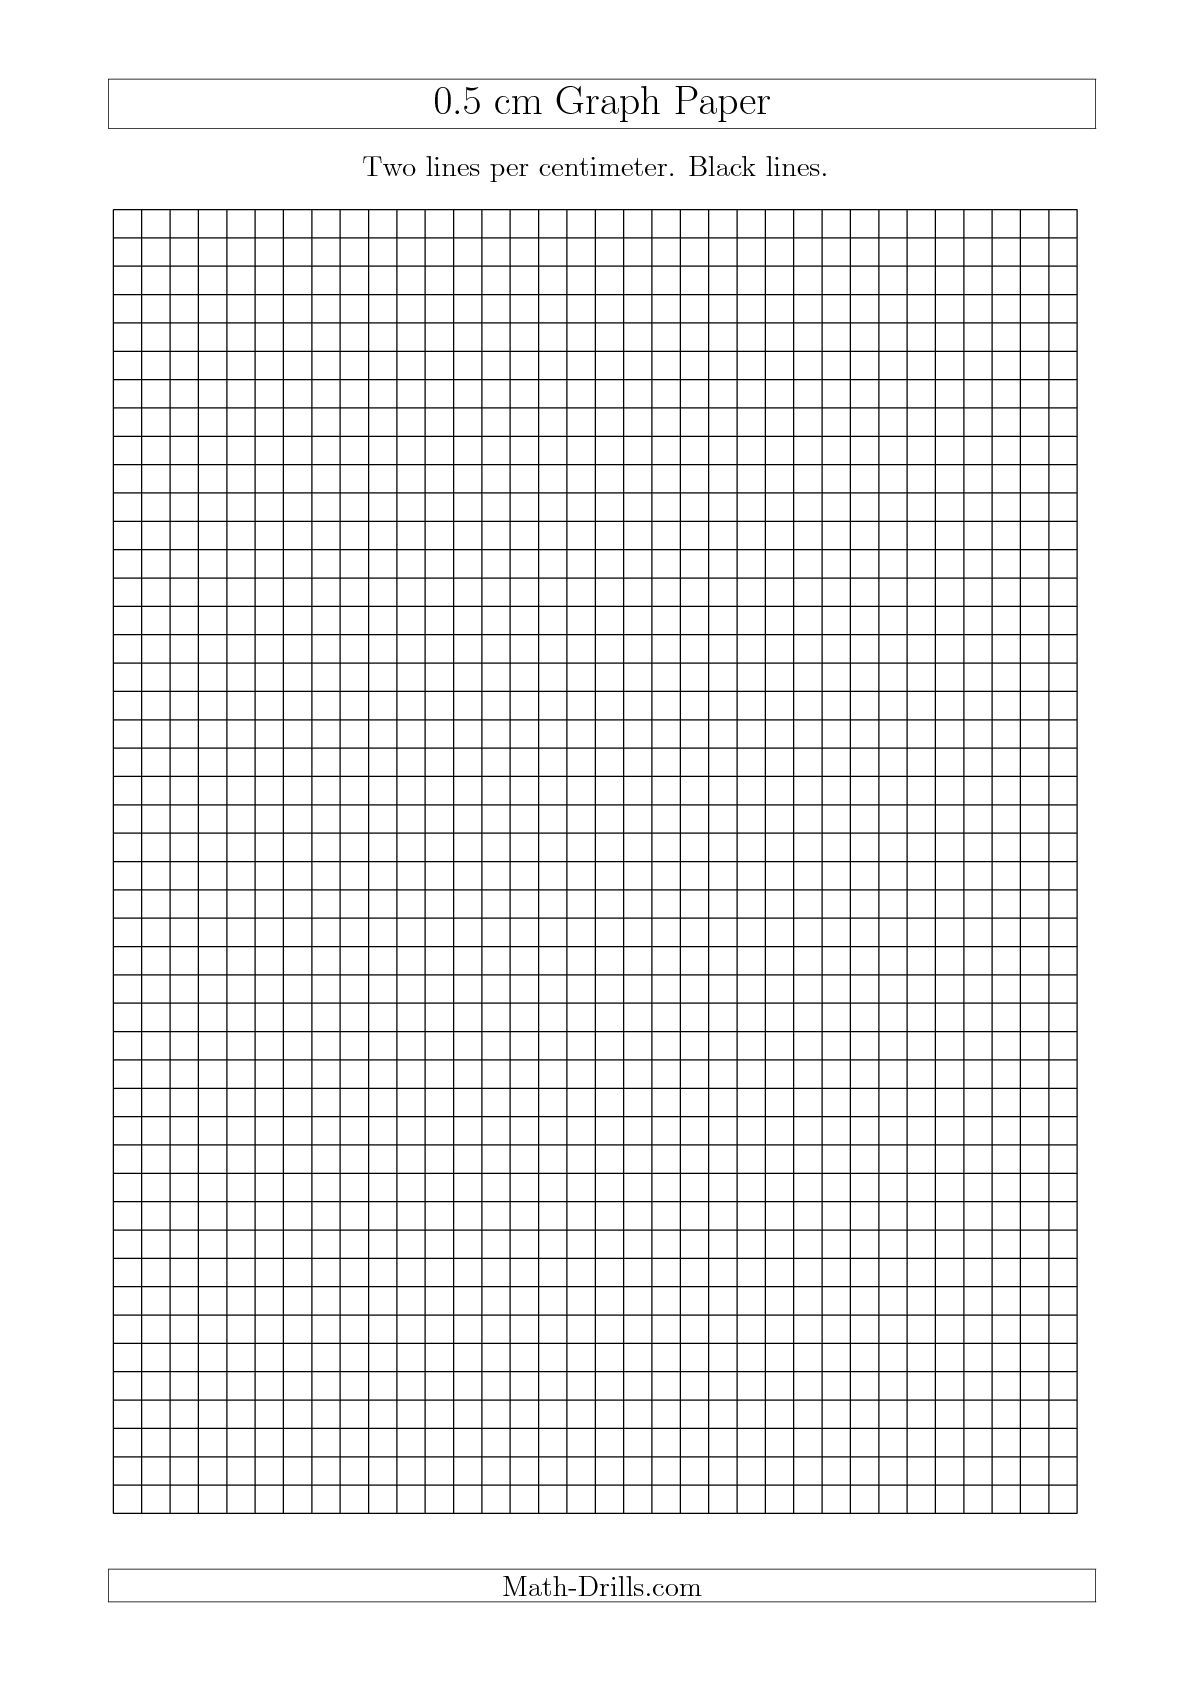 The 0 5 Cm Graph Paper With Black Lines A4 Size A Math Worksheet From The Graph Paper Page